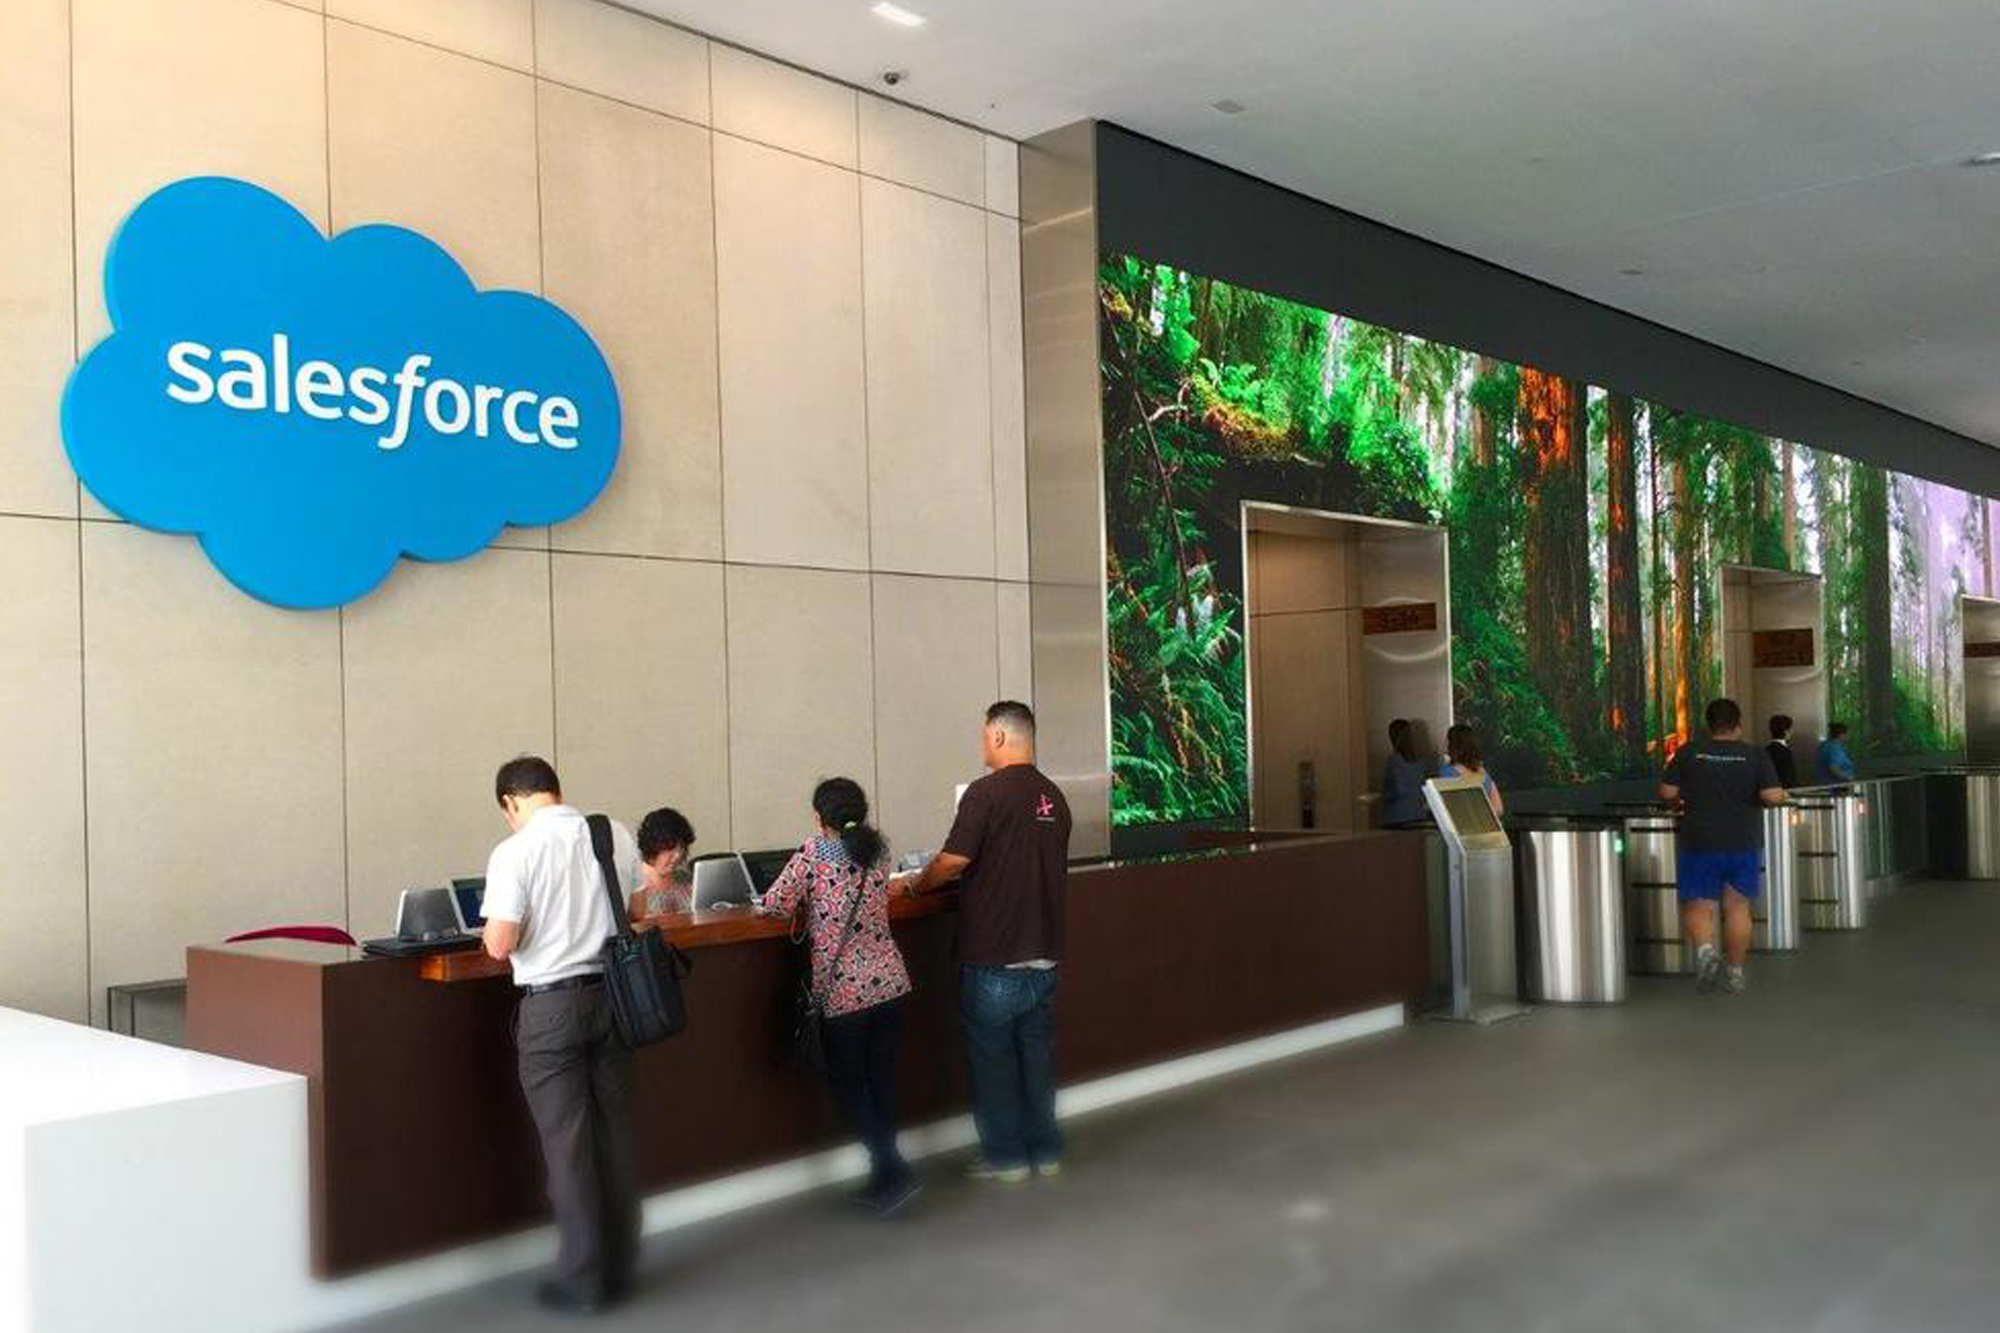 salesforce_resized